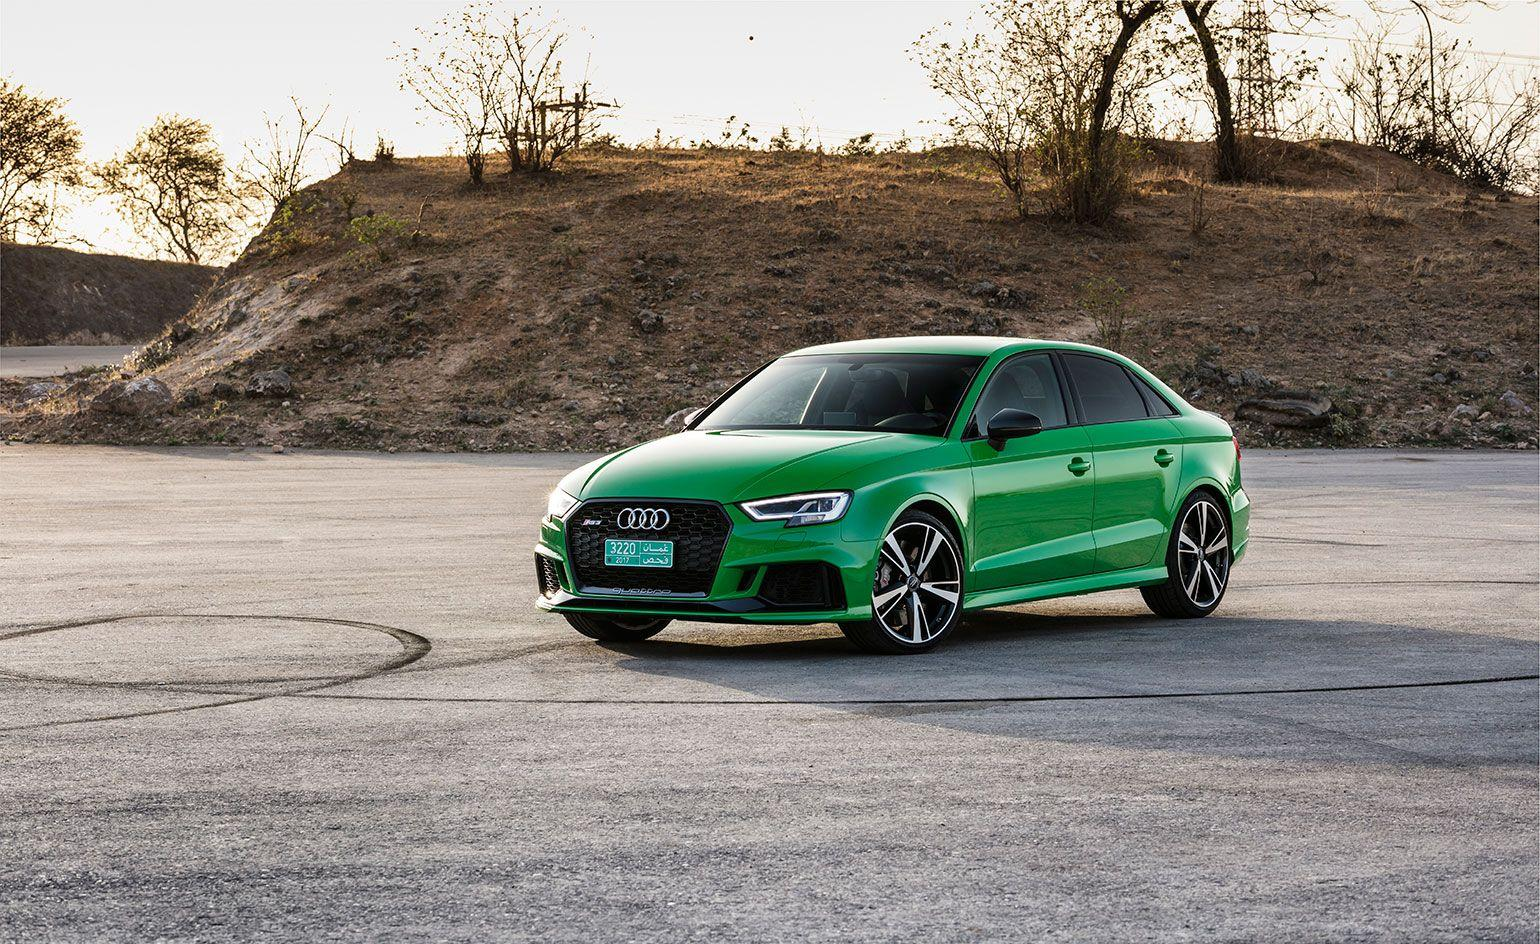 The launch of the new Audi RS3